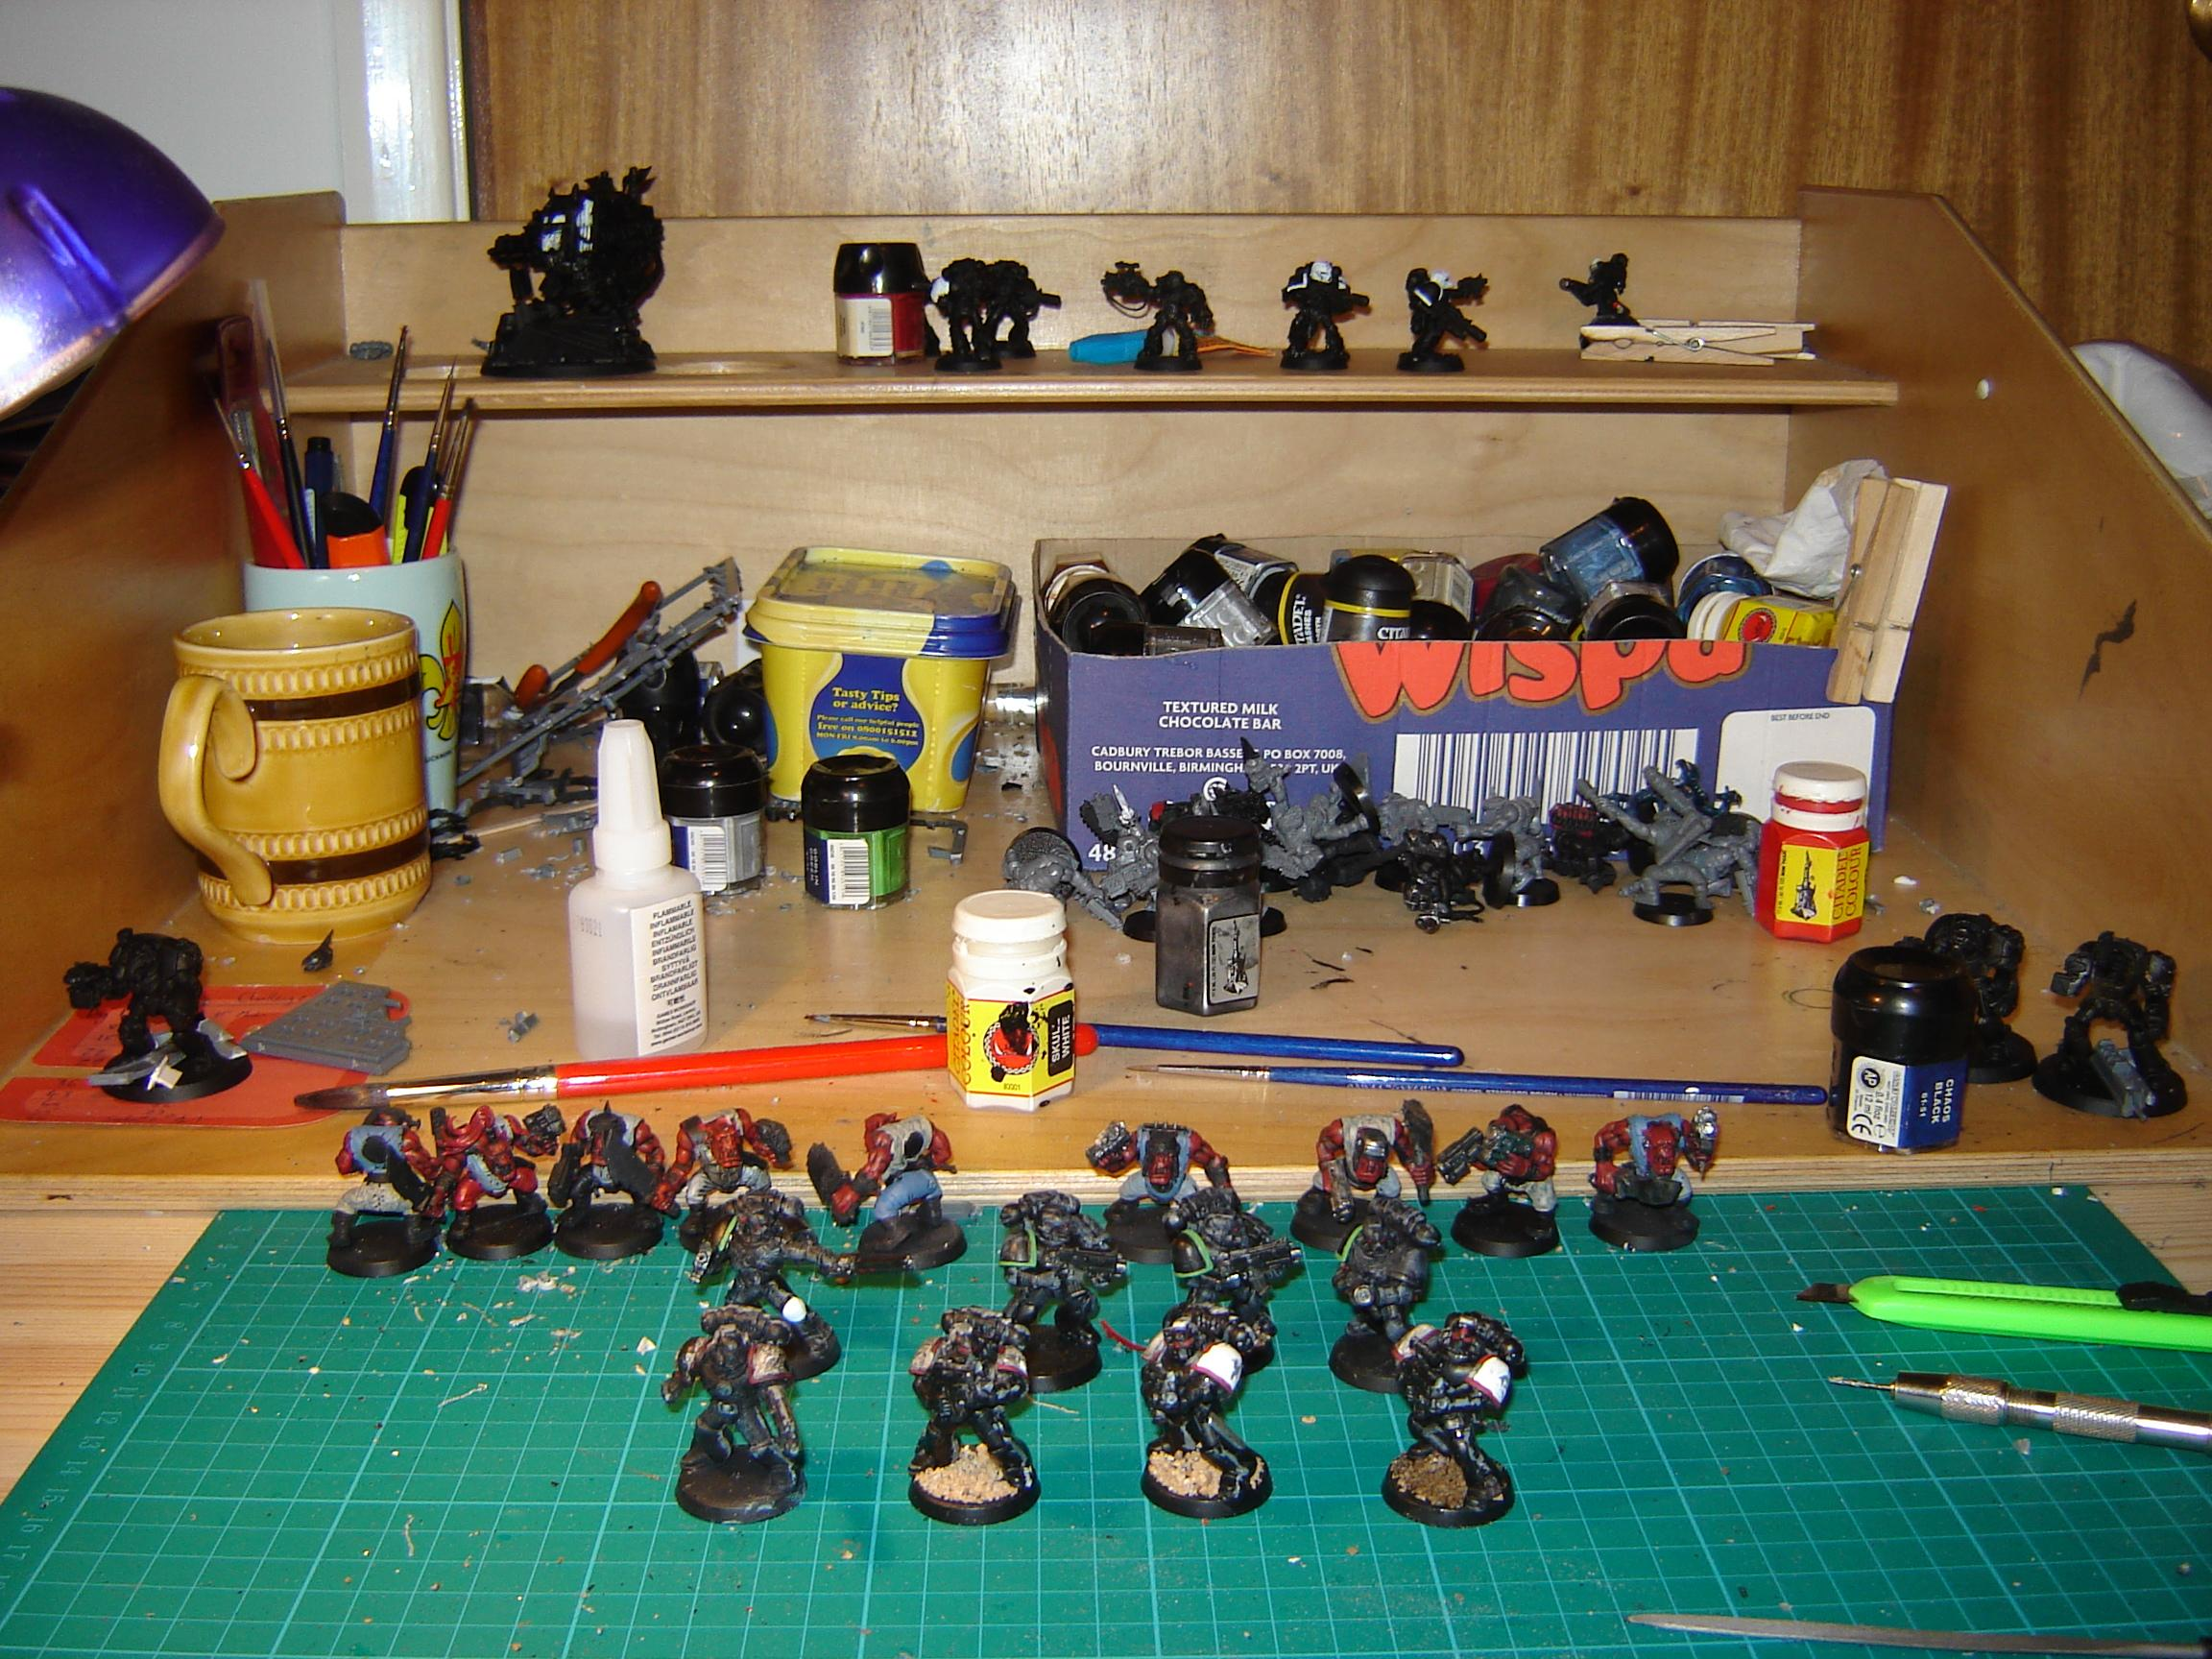 Moving slowly on...8 models completed...38 left to finish!